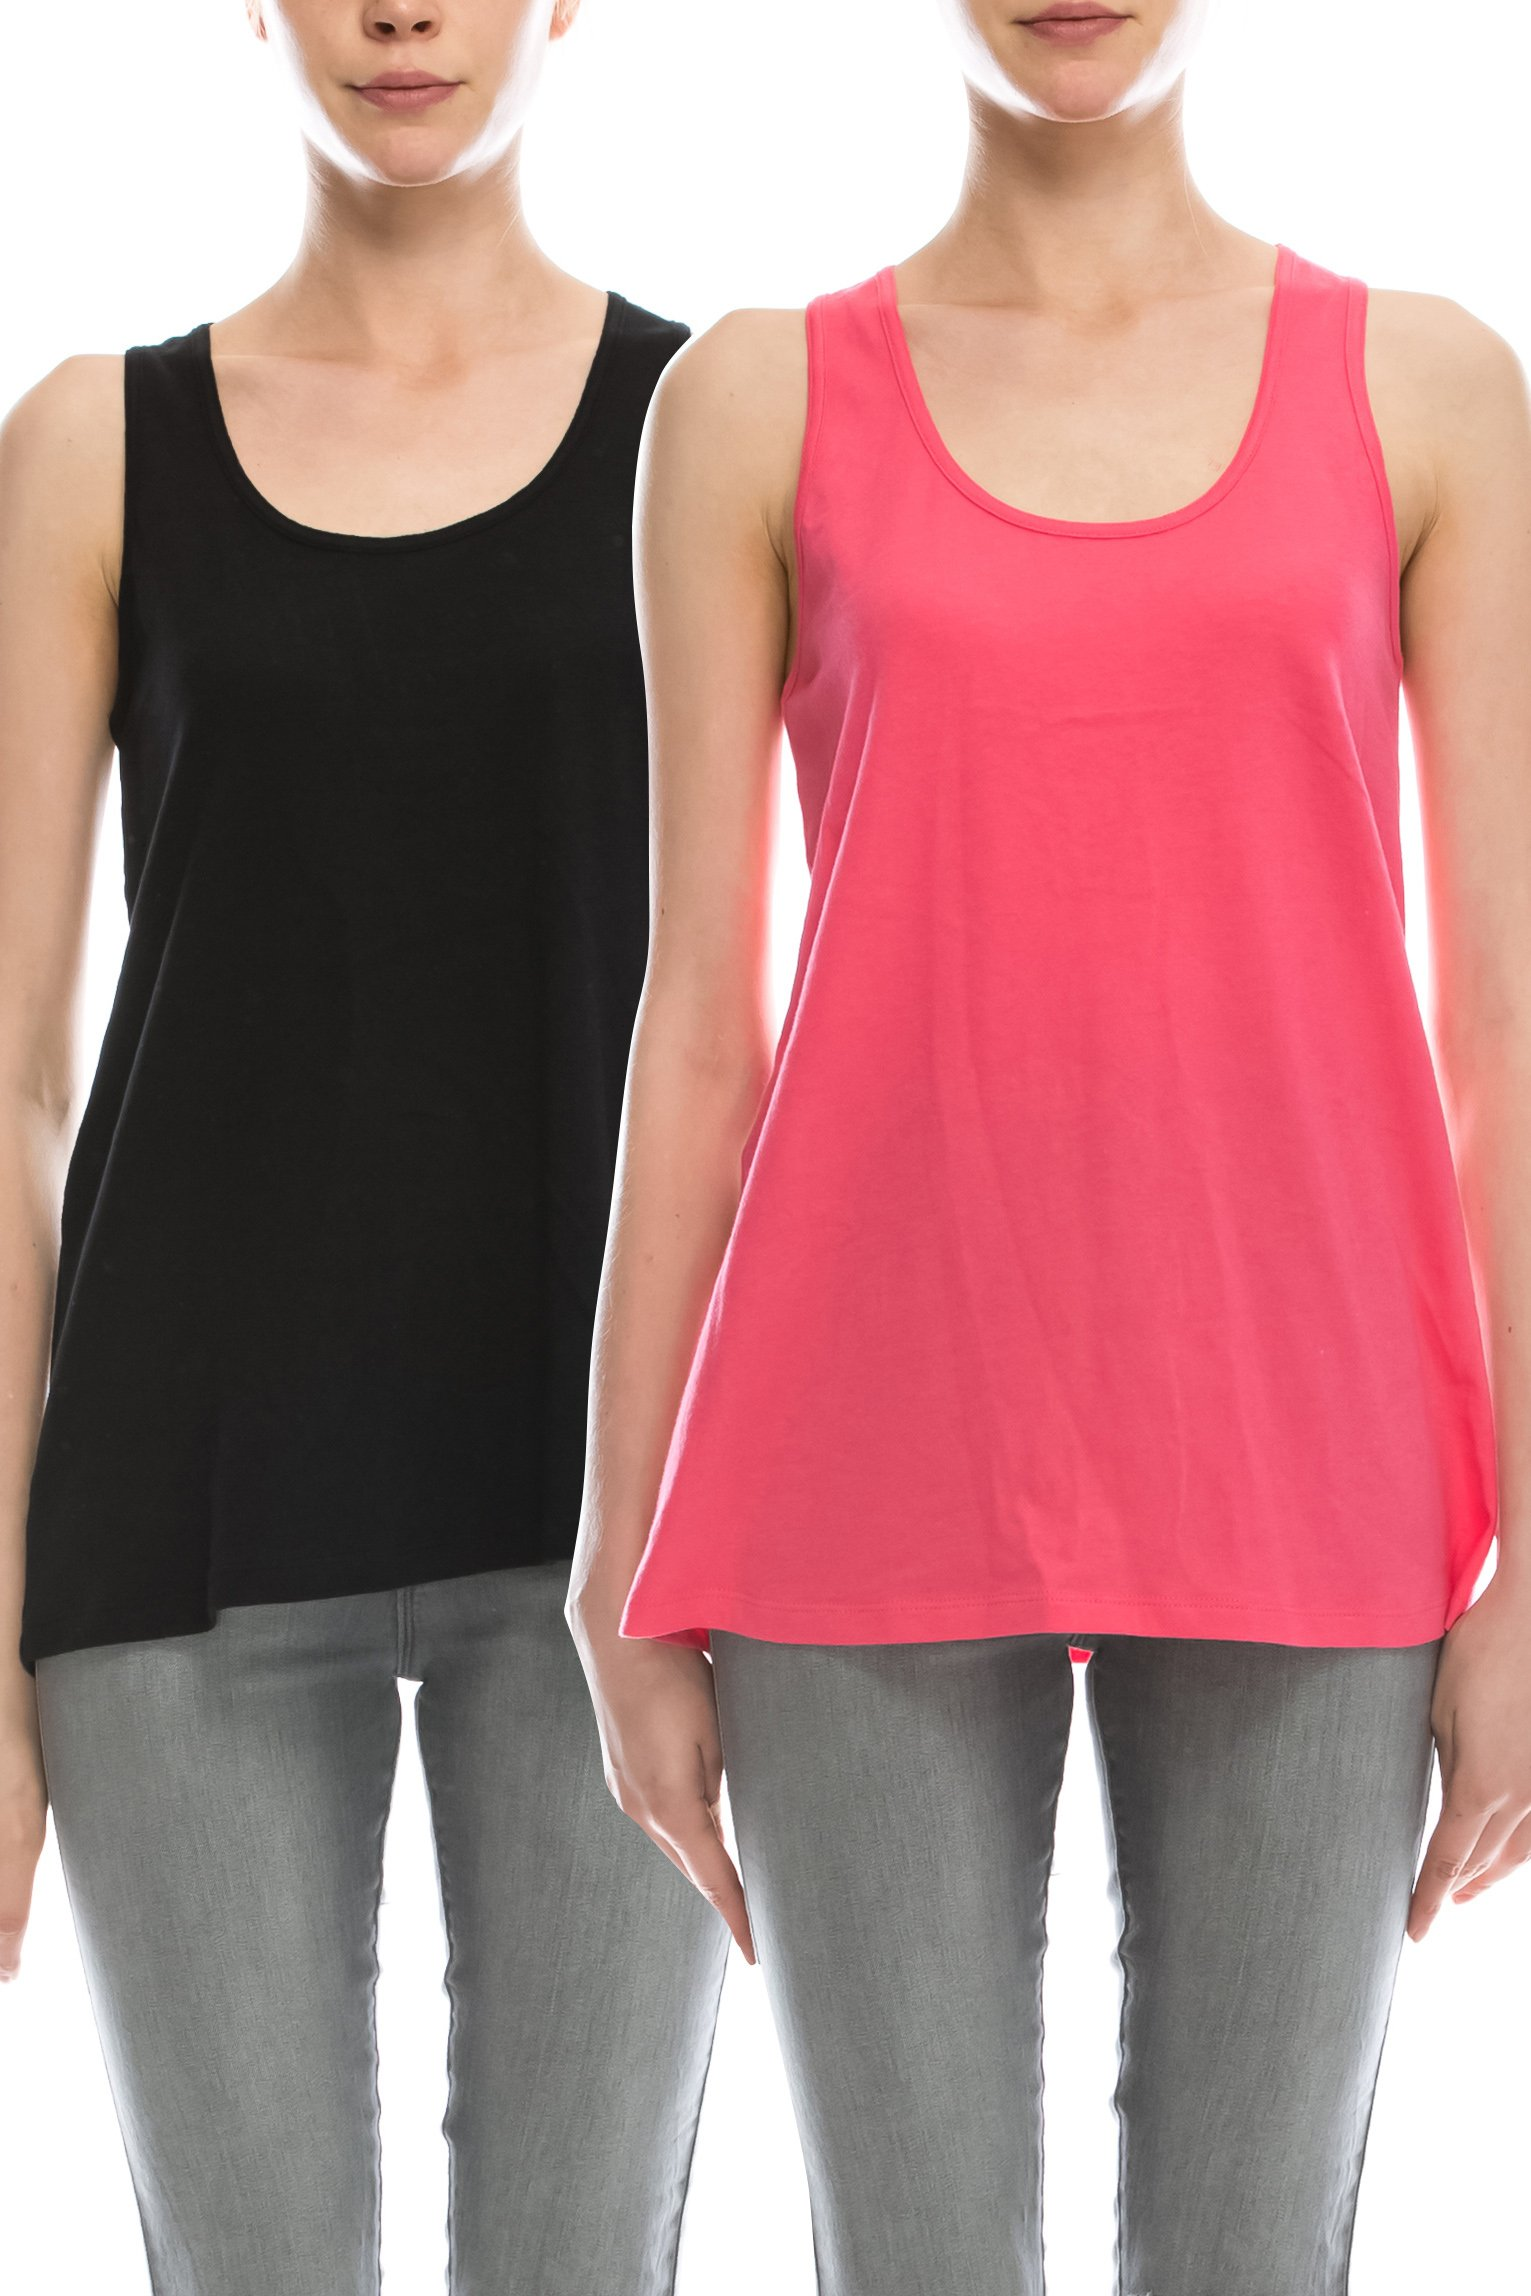 Loose Fit Relaxed Flowy Knit Tank Top: workout jersey sexy cheap pack Black/Coral XL